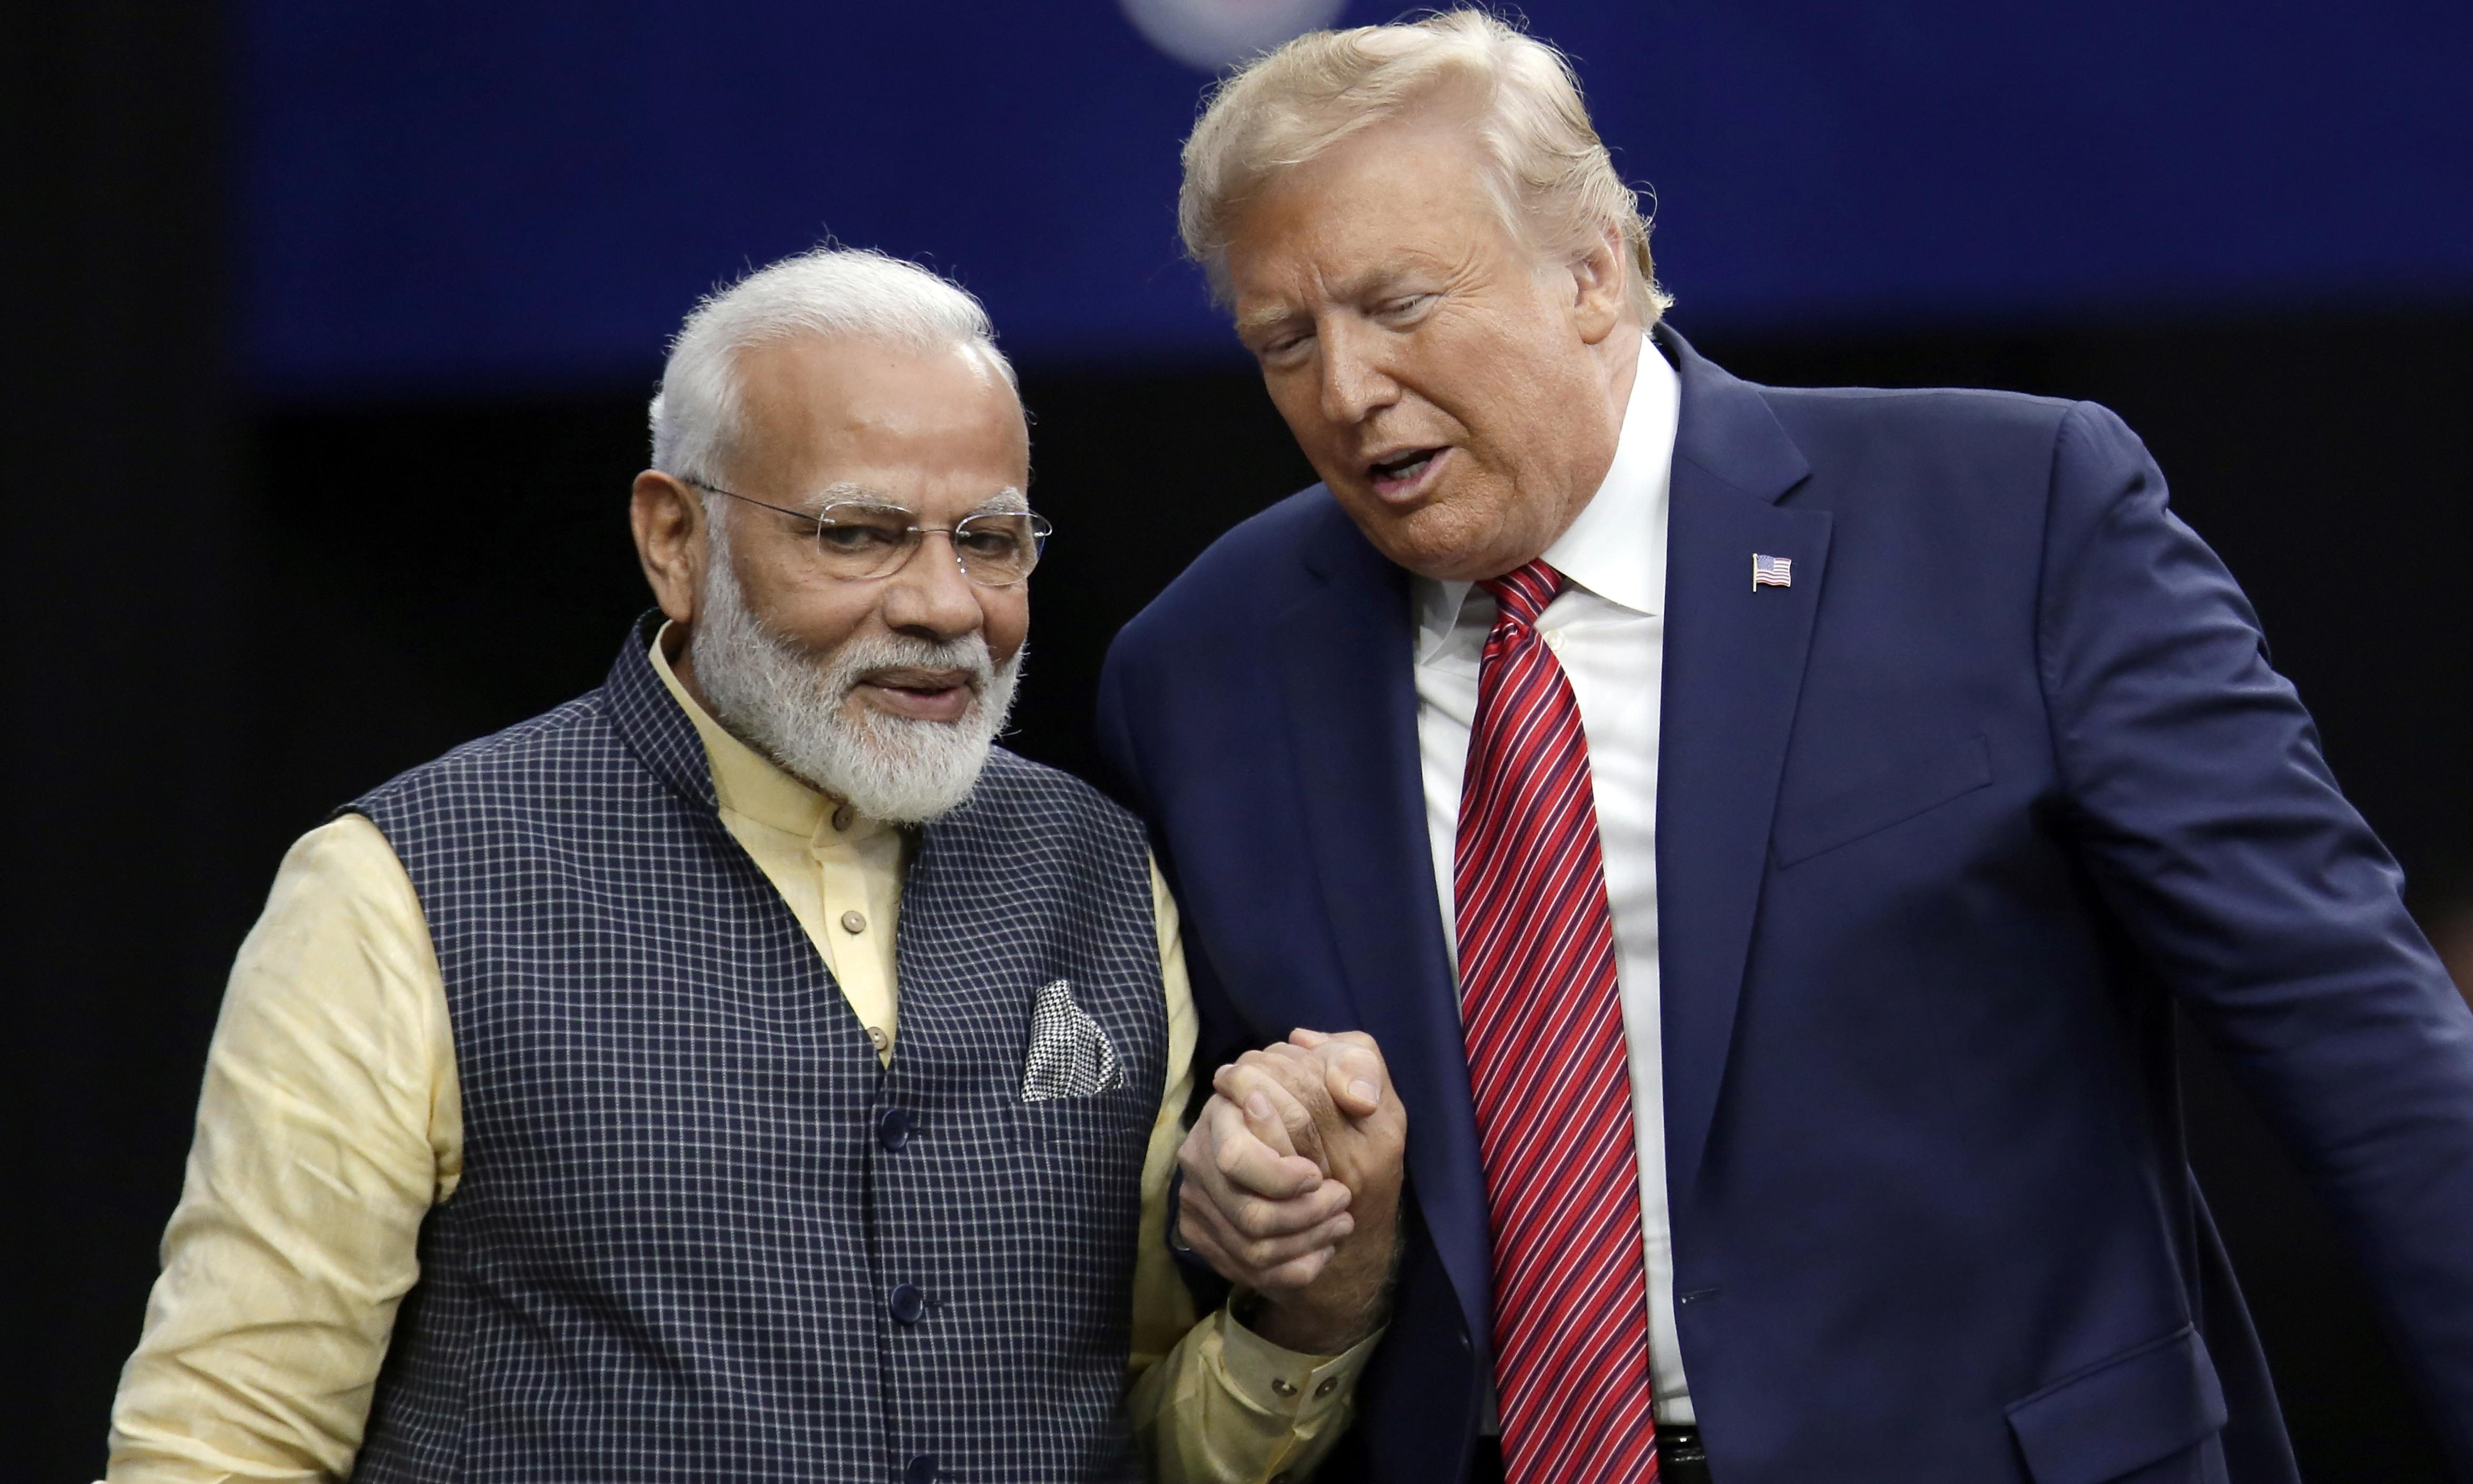 'Howdy Modi': thousands of Indian Americans attend Trump rally